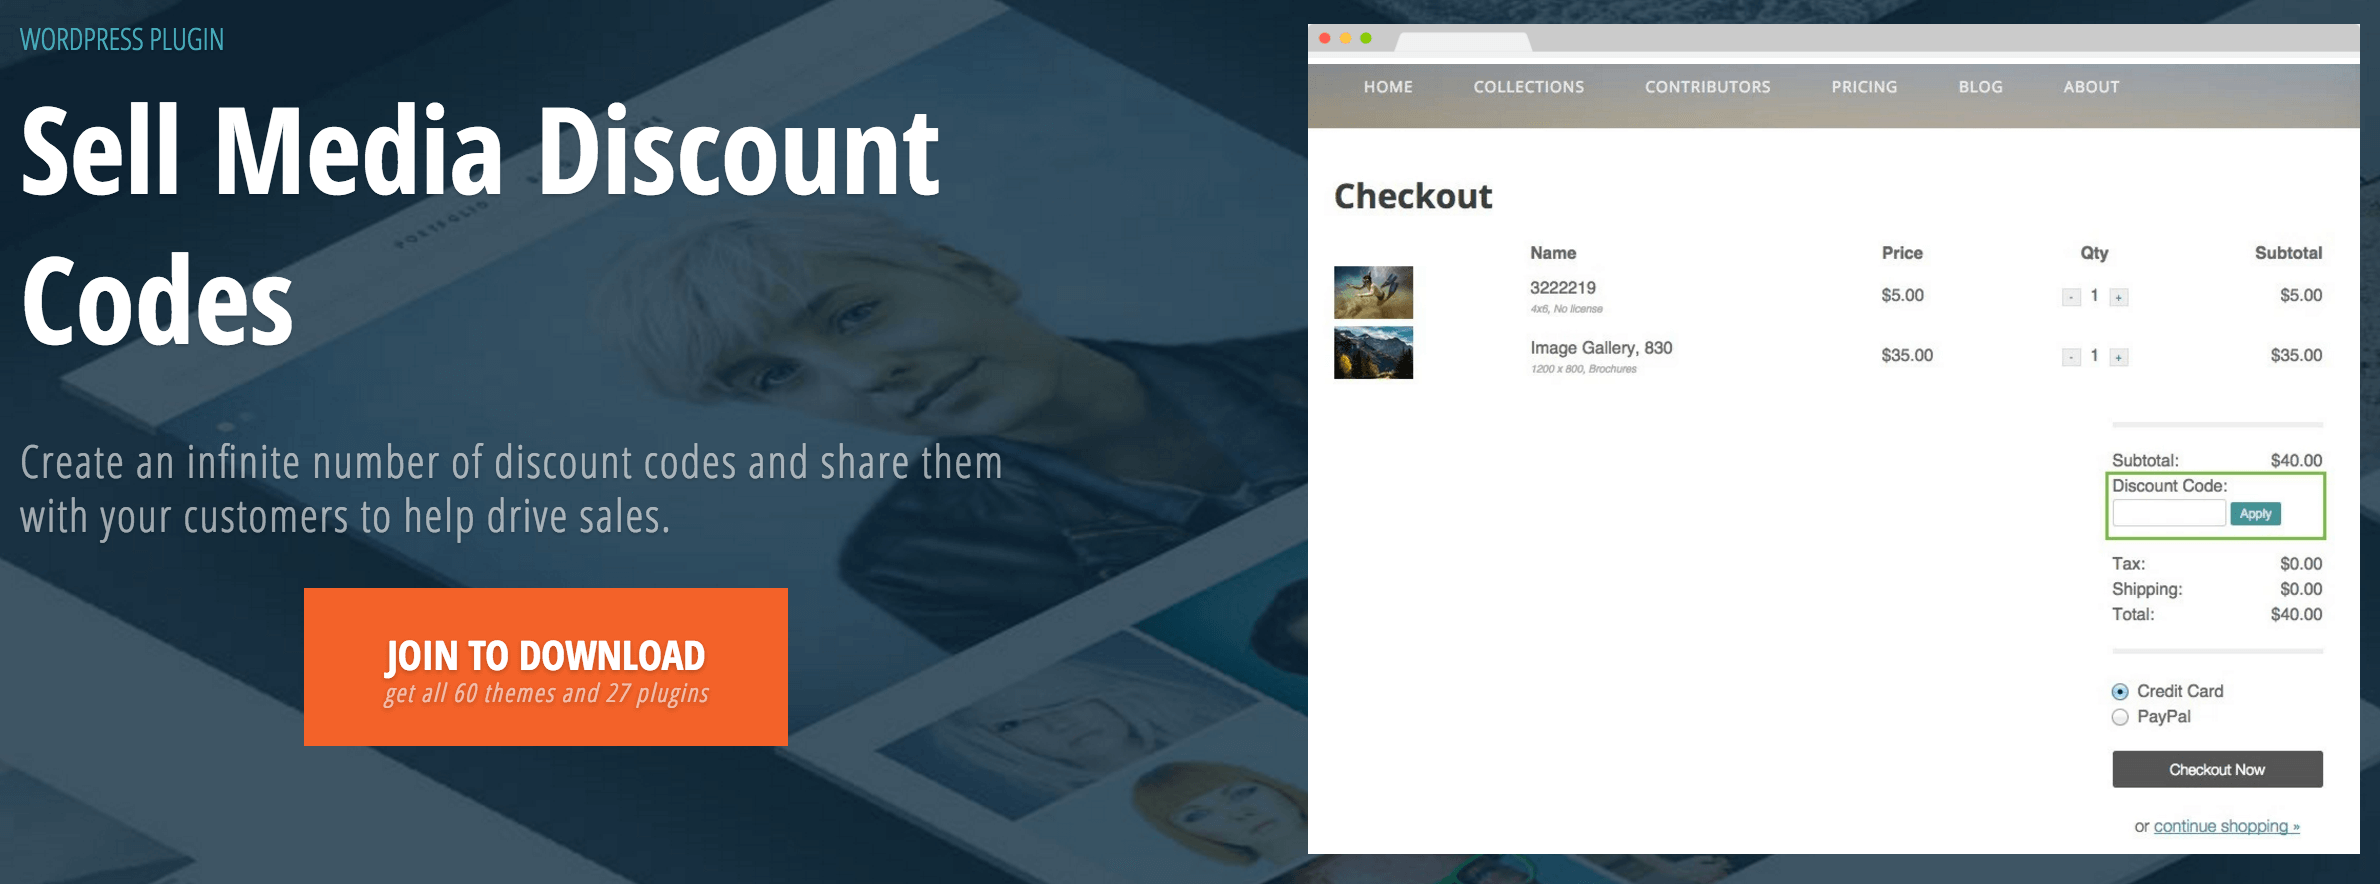 use coupons sparingly to increase checkout conversions